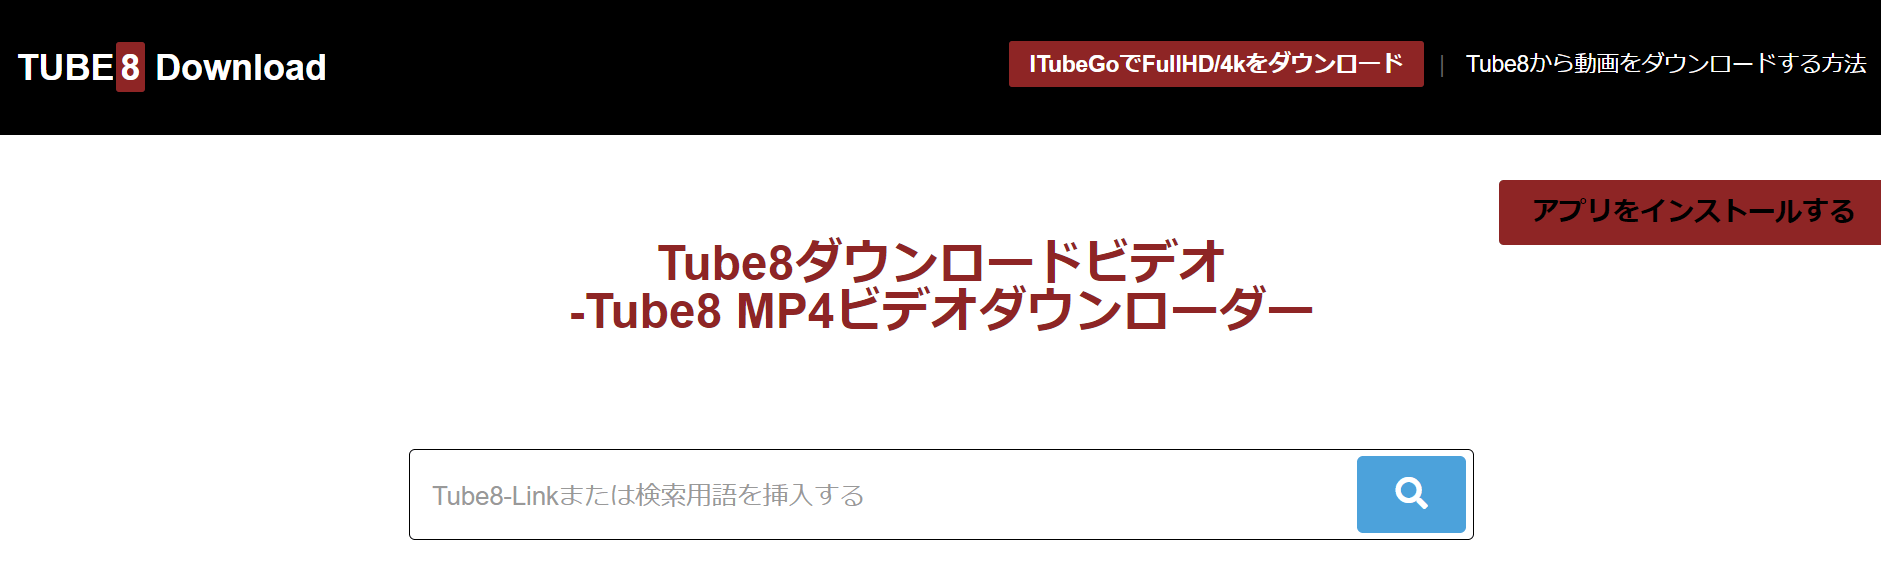 TUBE8 Download